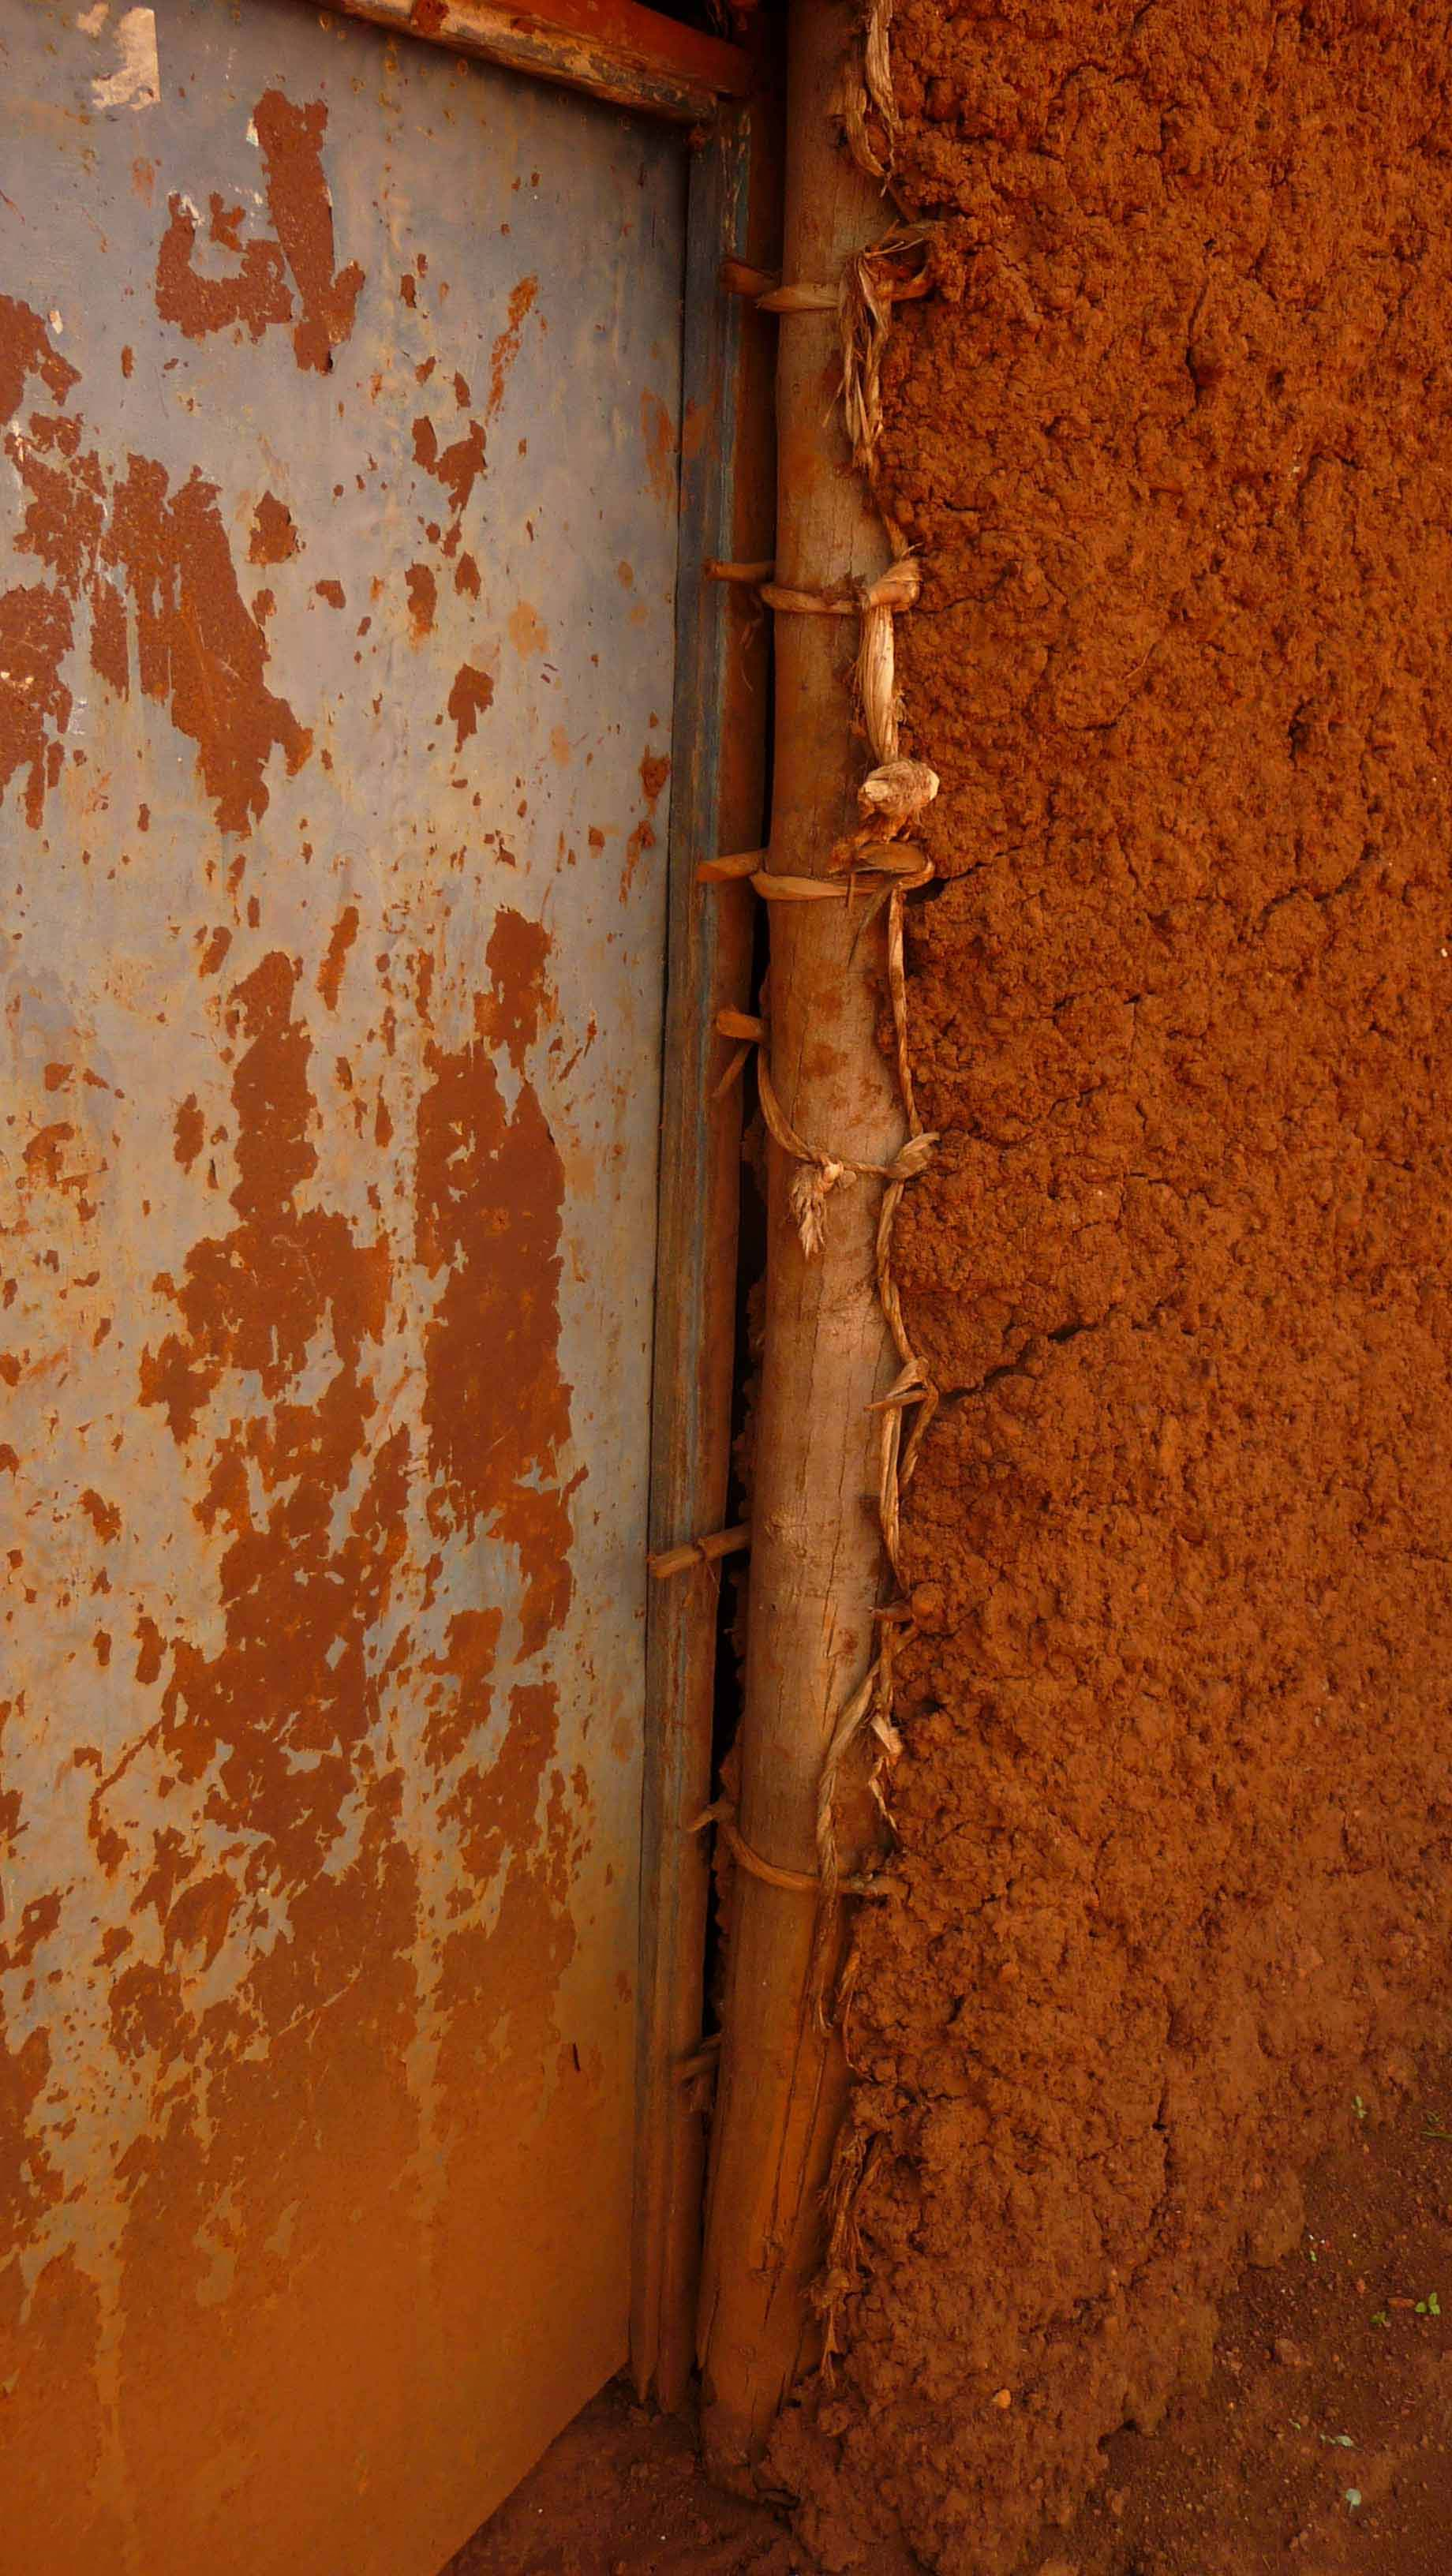 Rwanda detail of the door opening in a typical wattle & daub structure in rural